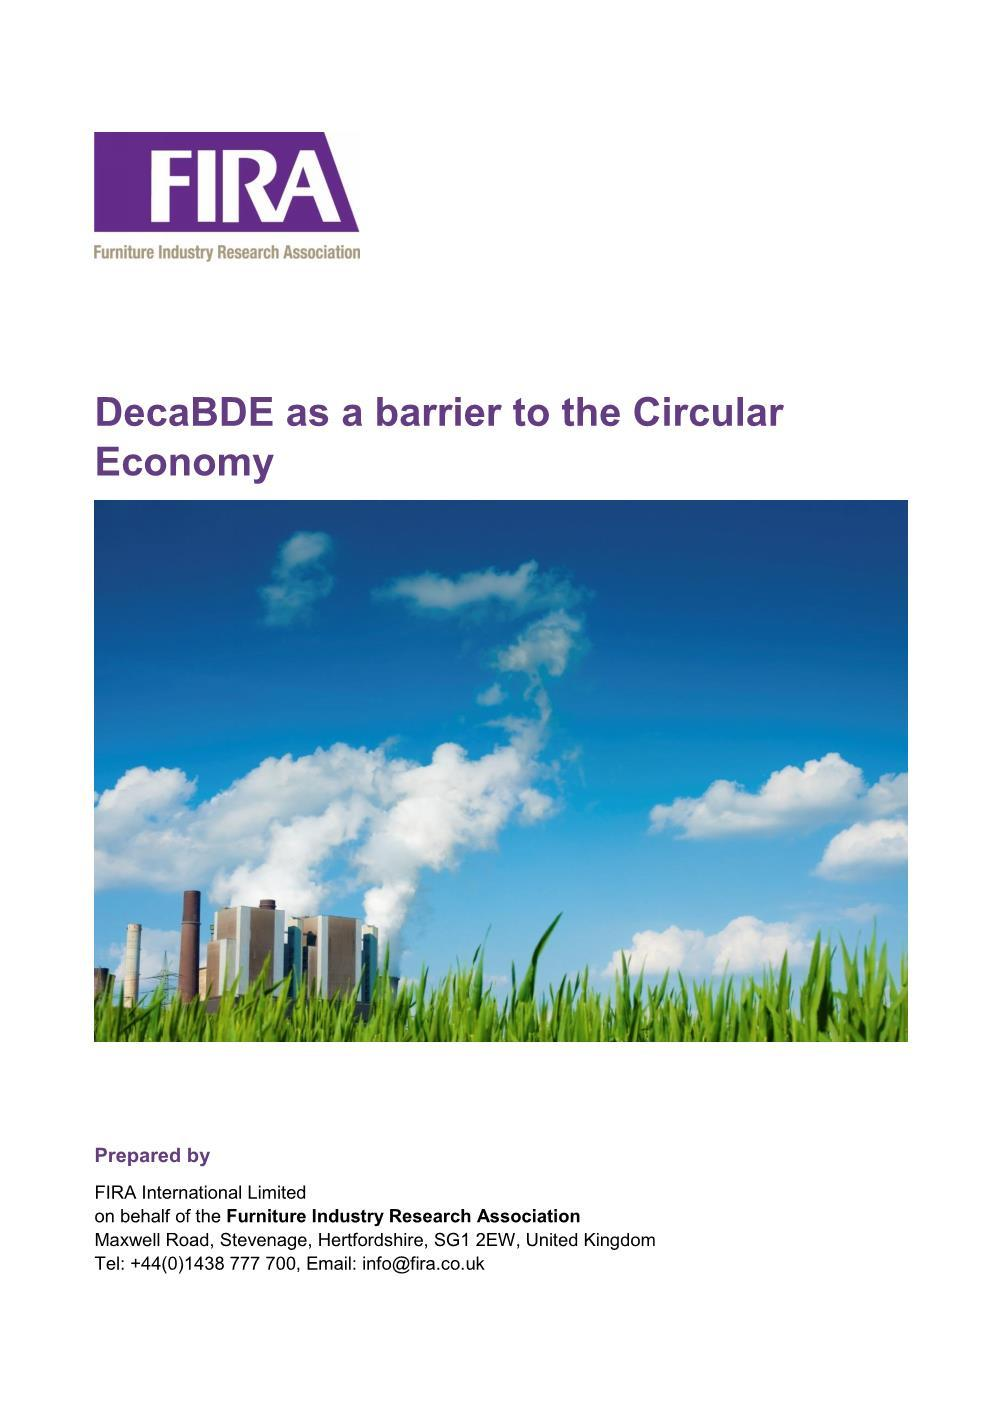 decaBDE-as-a-barrier-to-circular-economy-cover-image.jpg#asset:331717